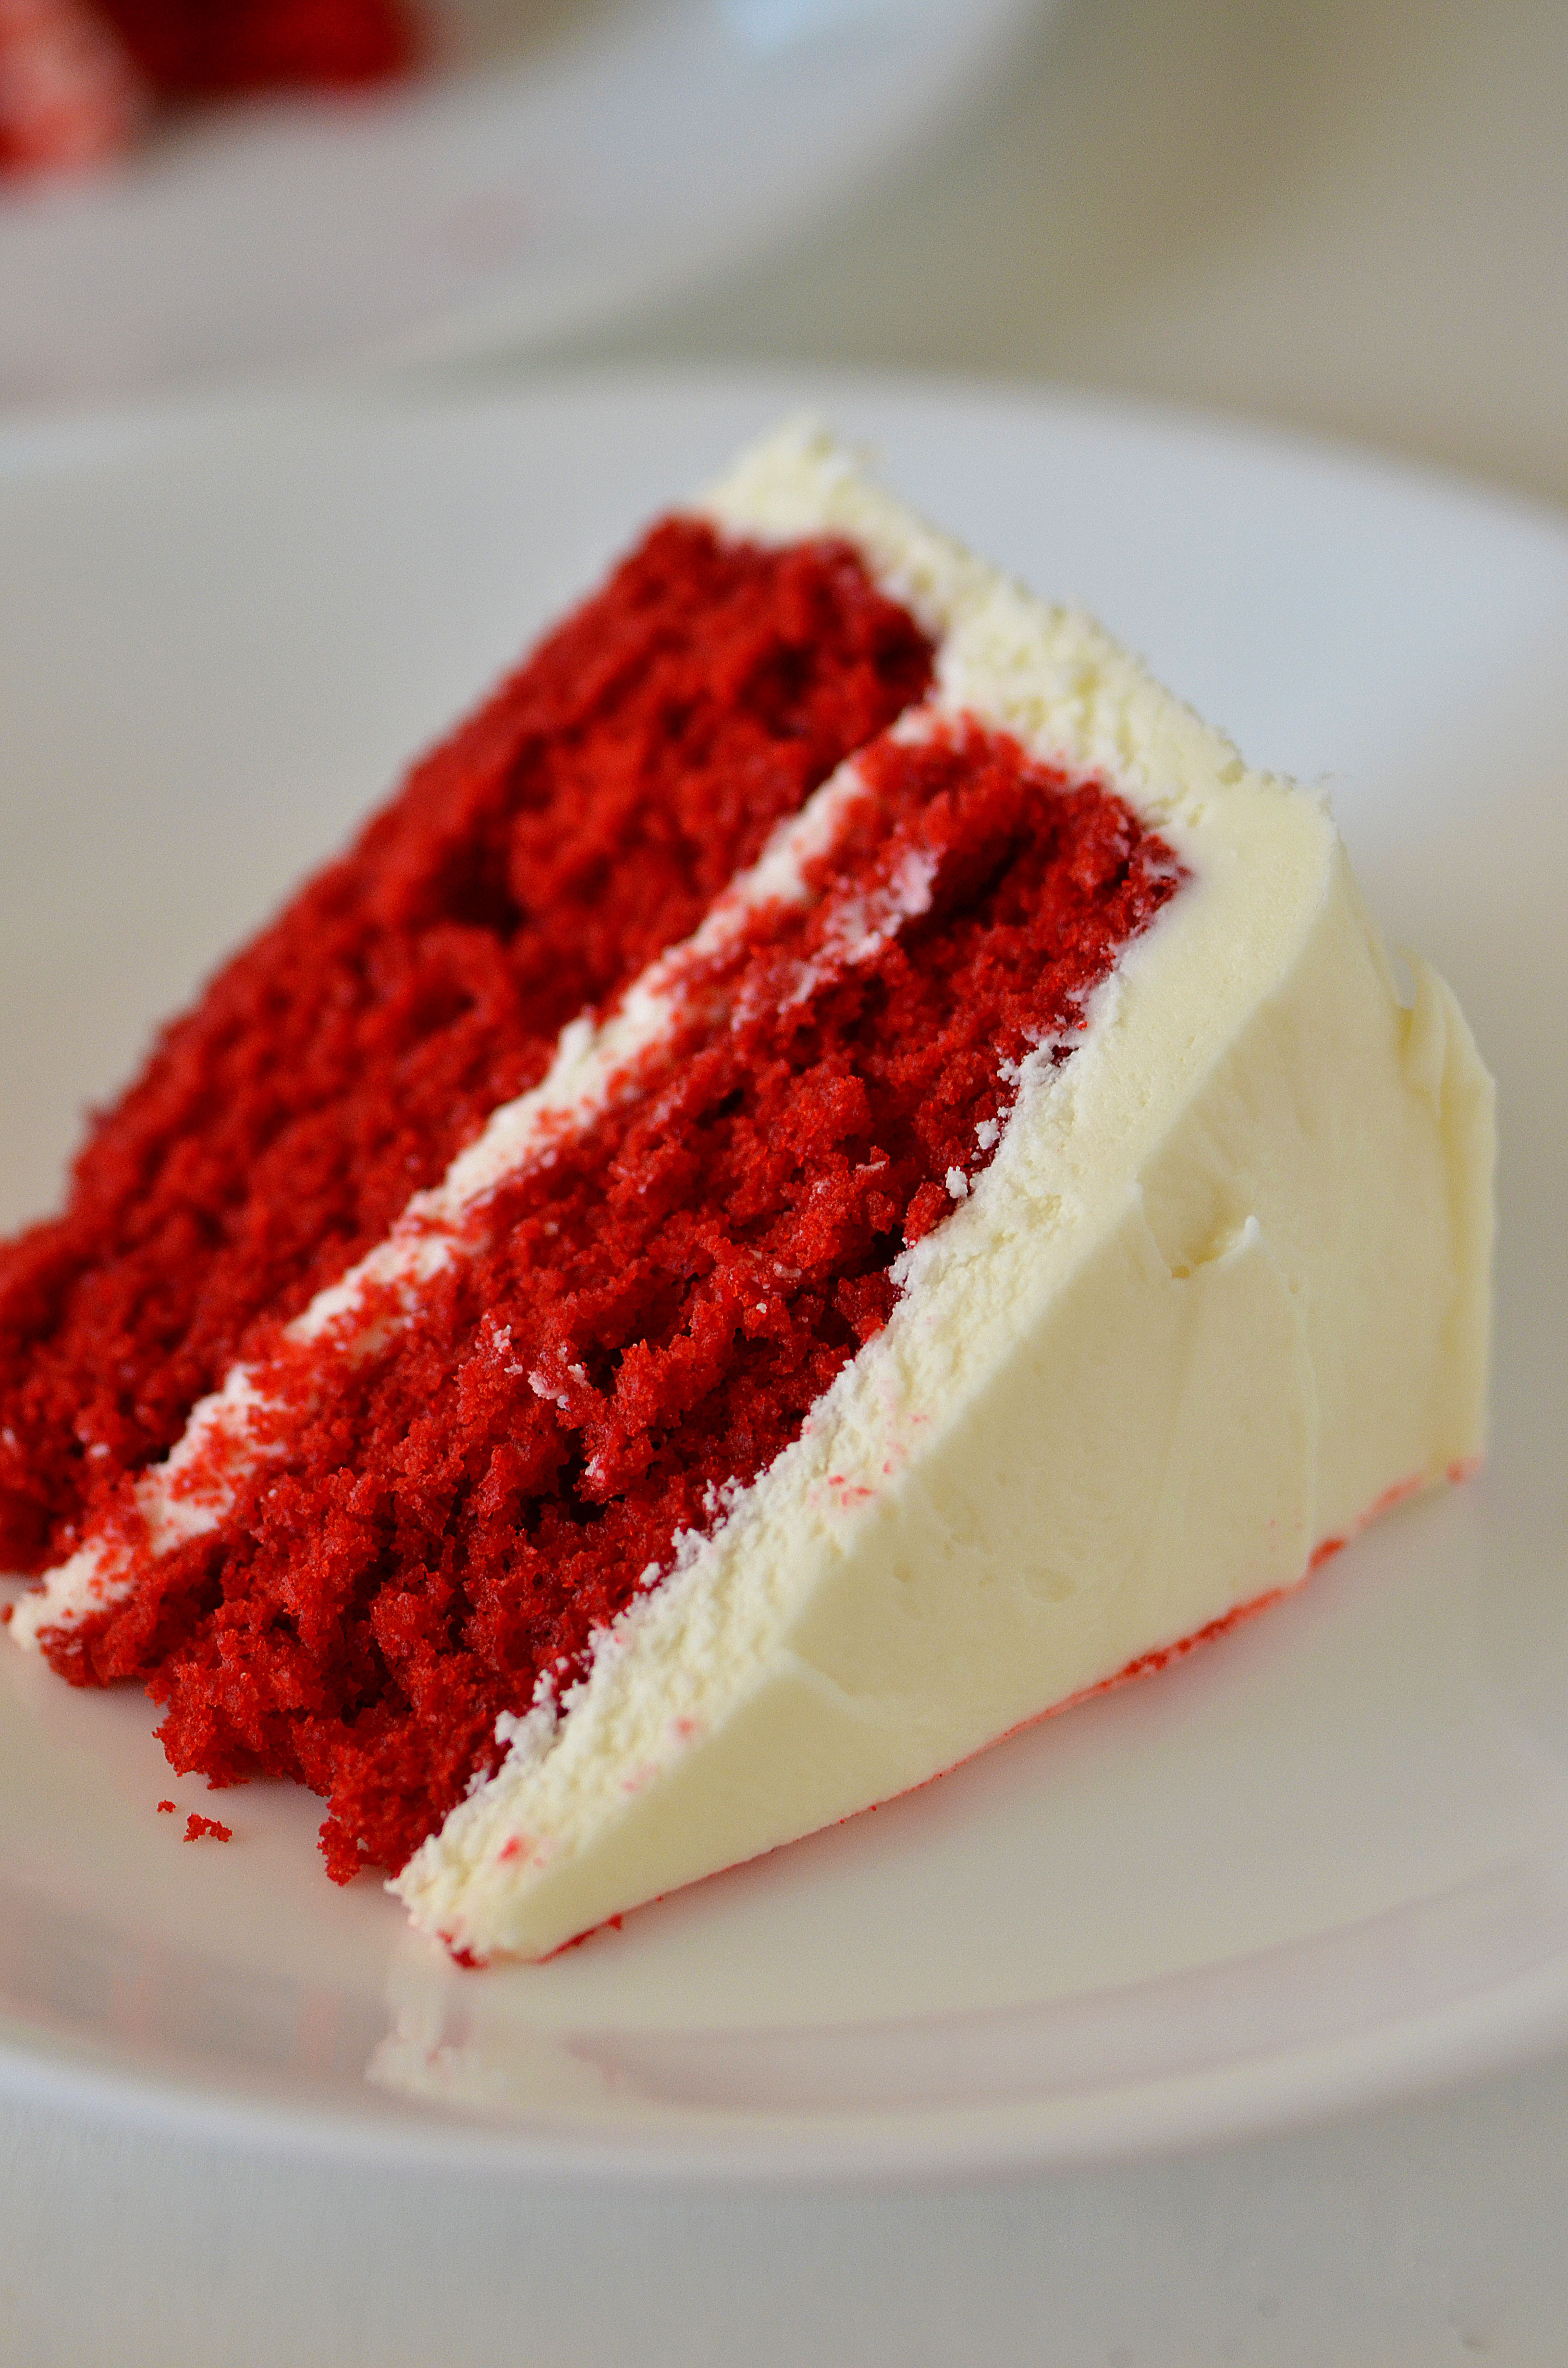 Red Velvet Cake Icing  Red Velvet Cake with Cream Cheese Frosting Life In The